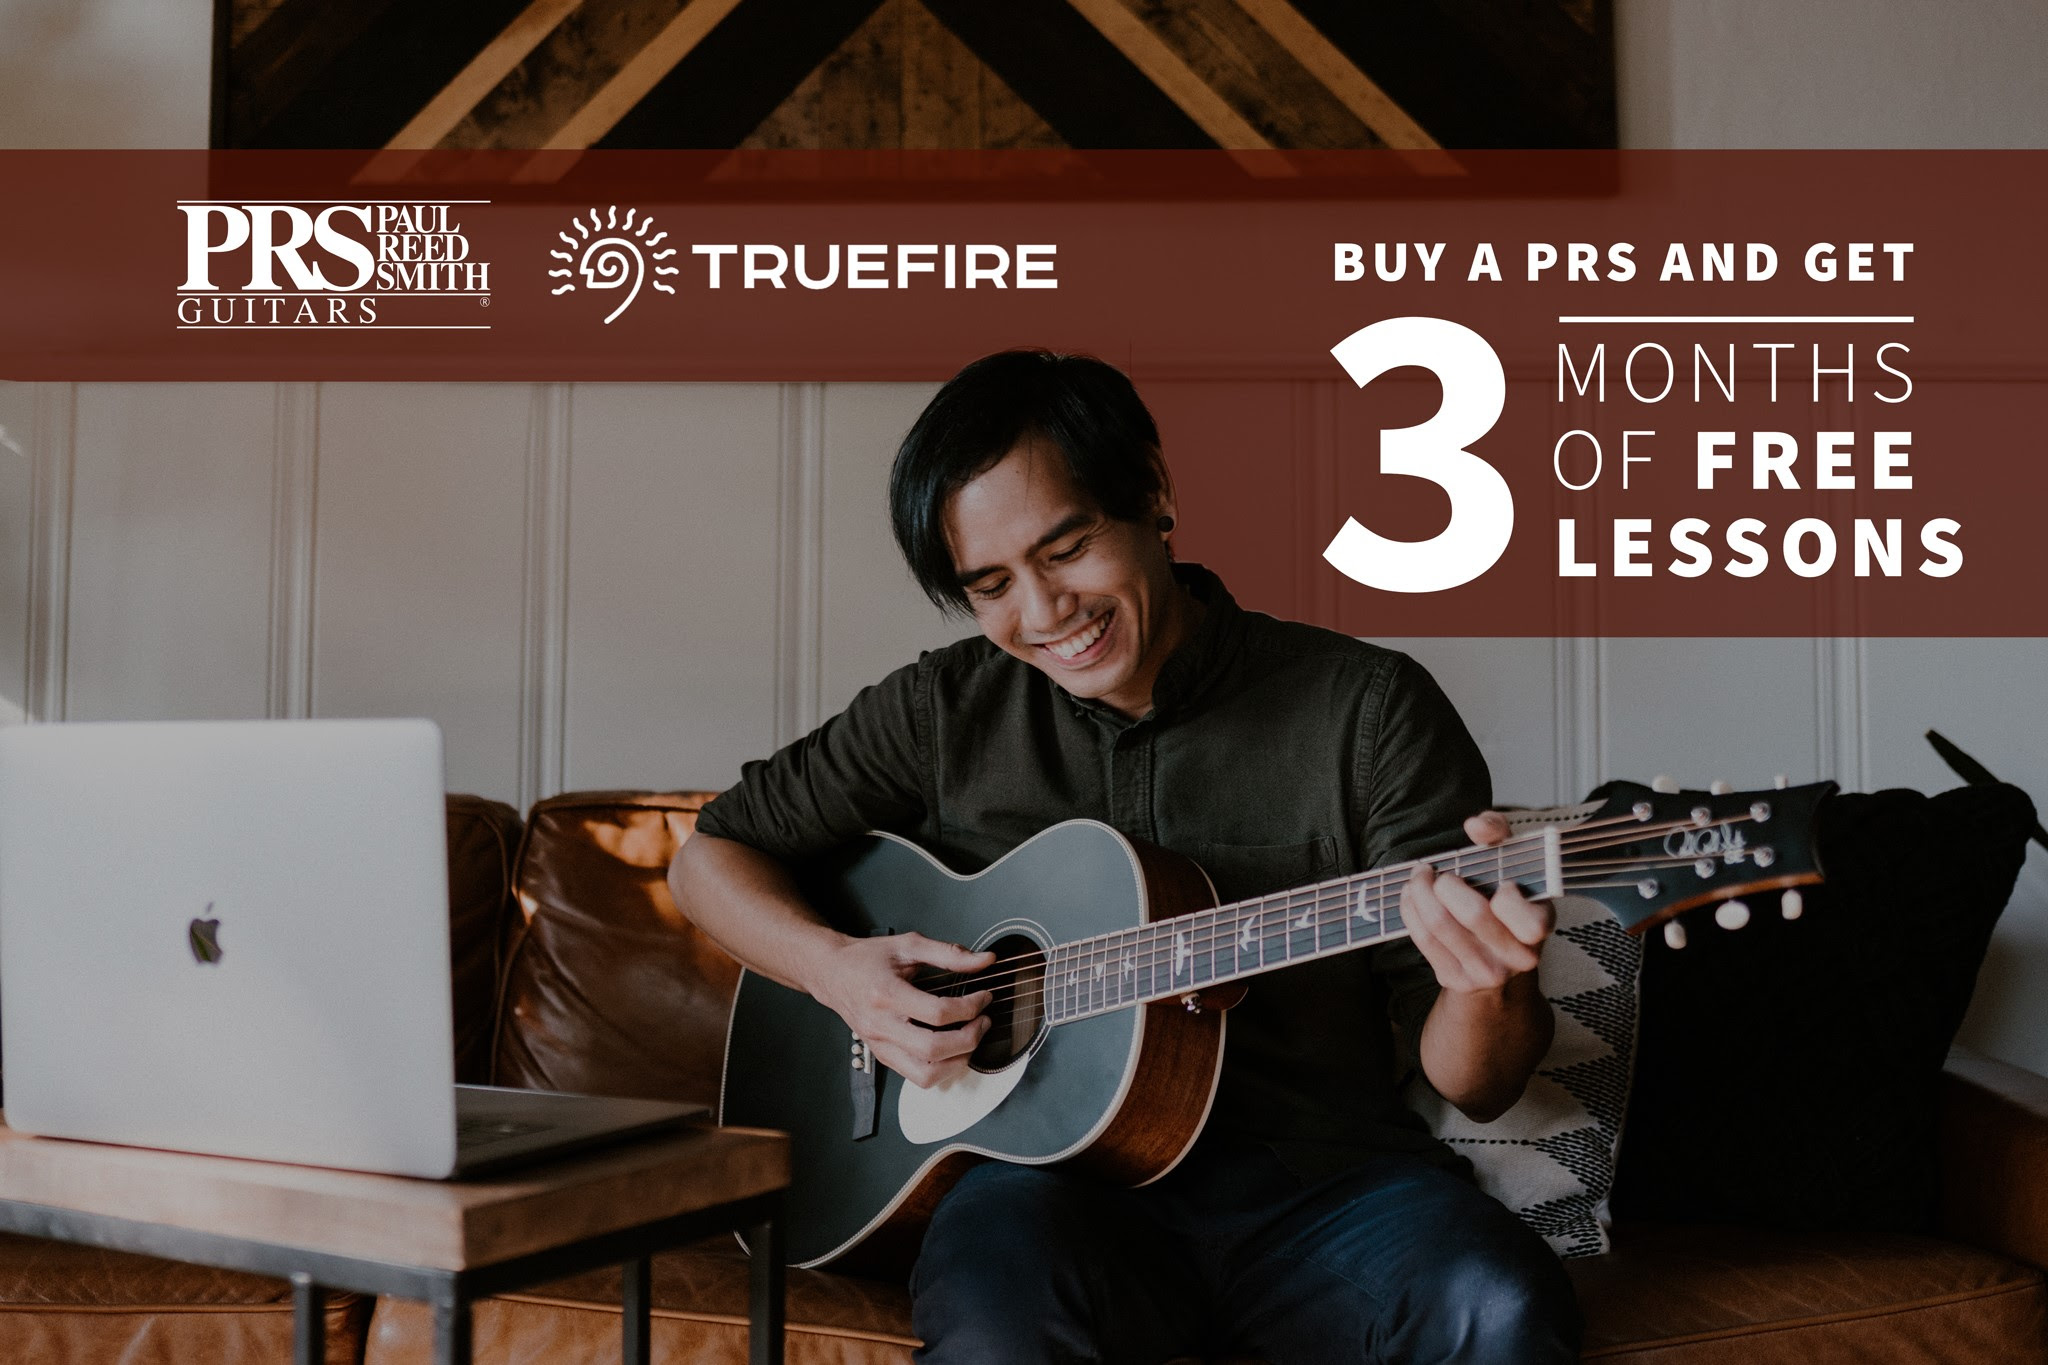 PRS Guitars & TrueFire Partner To Offer Free Online Guitar & Bass Lessons